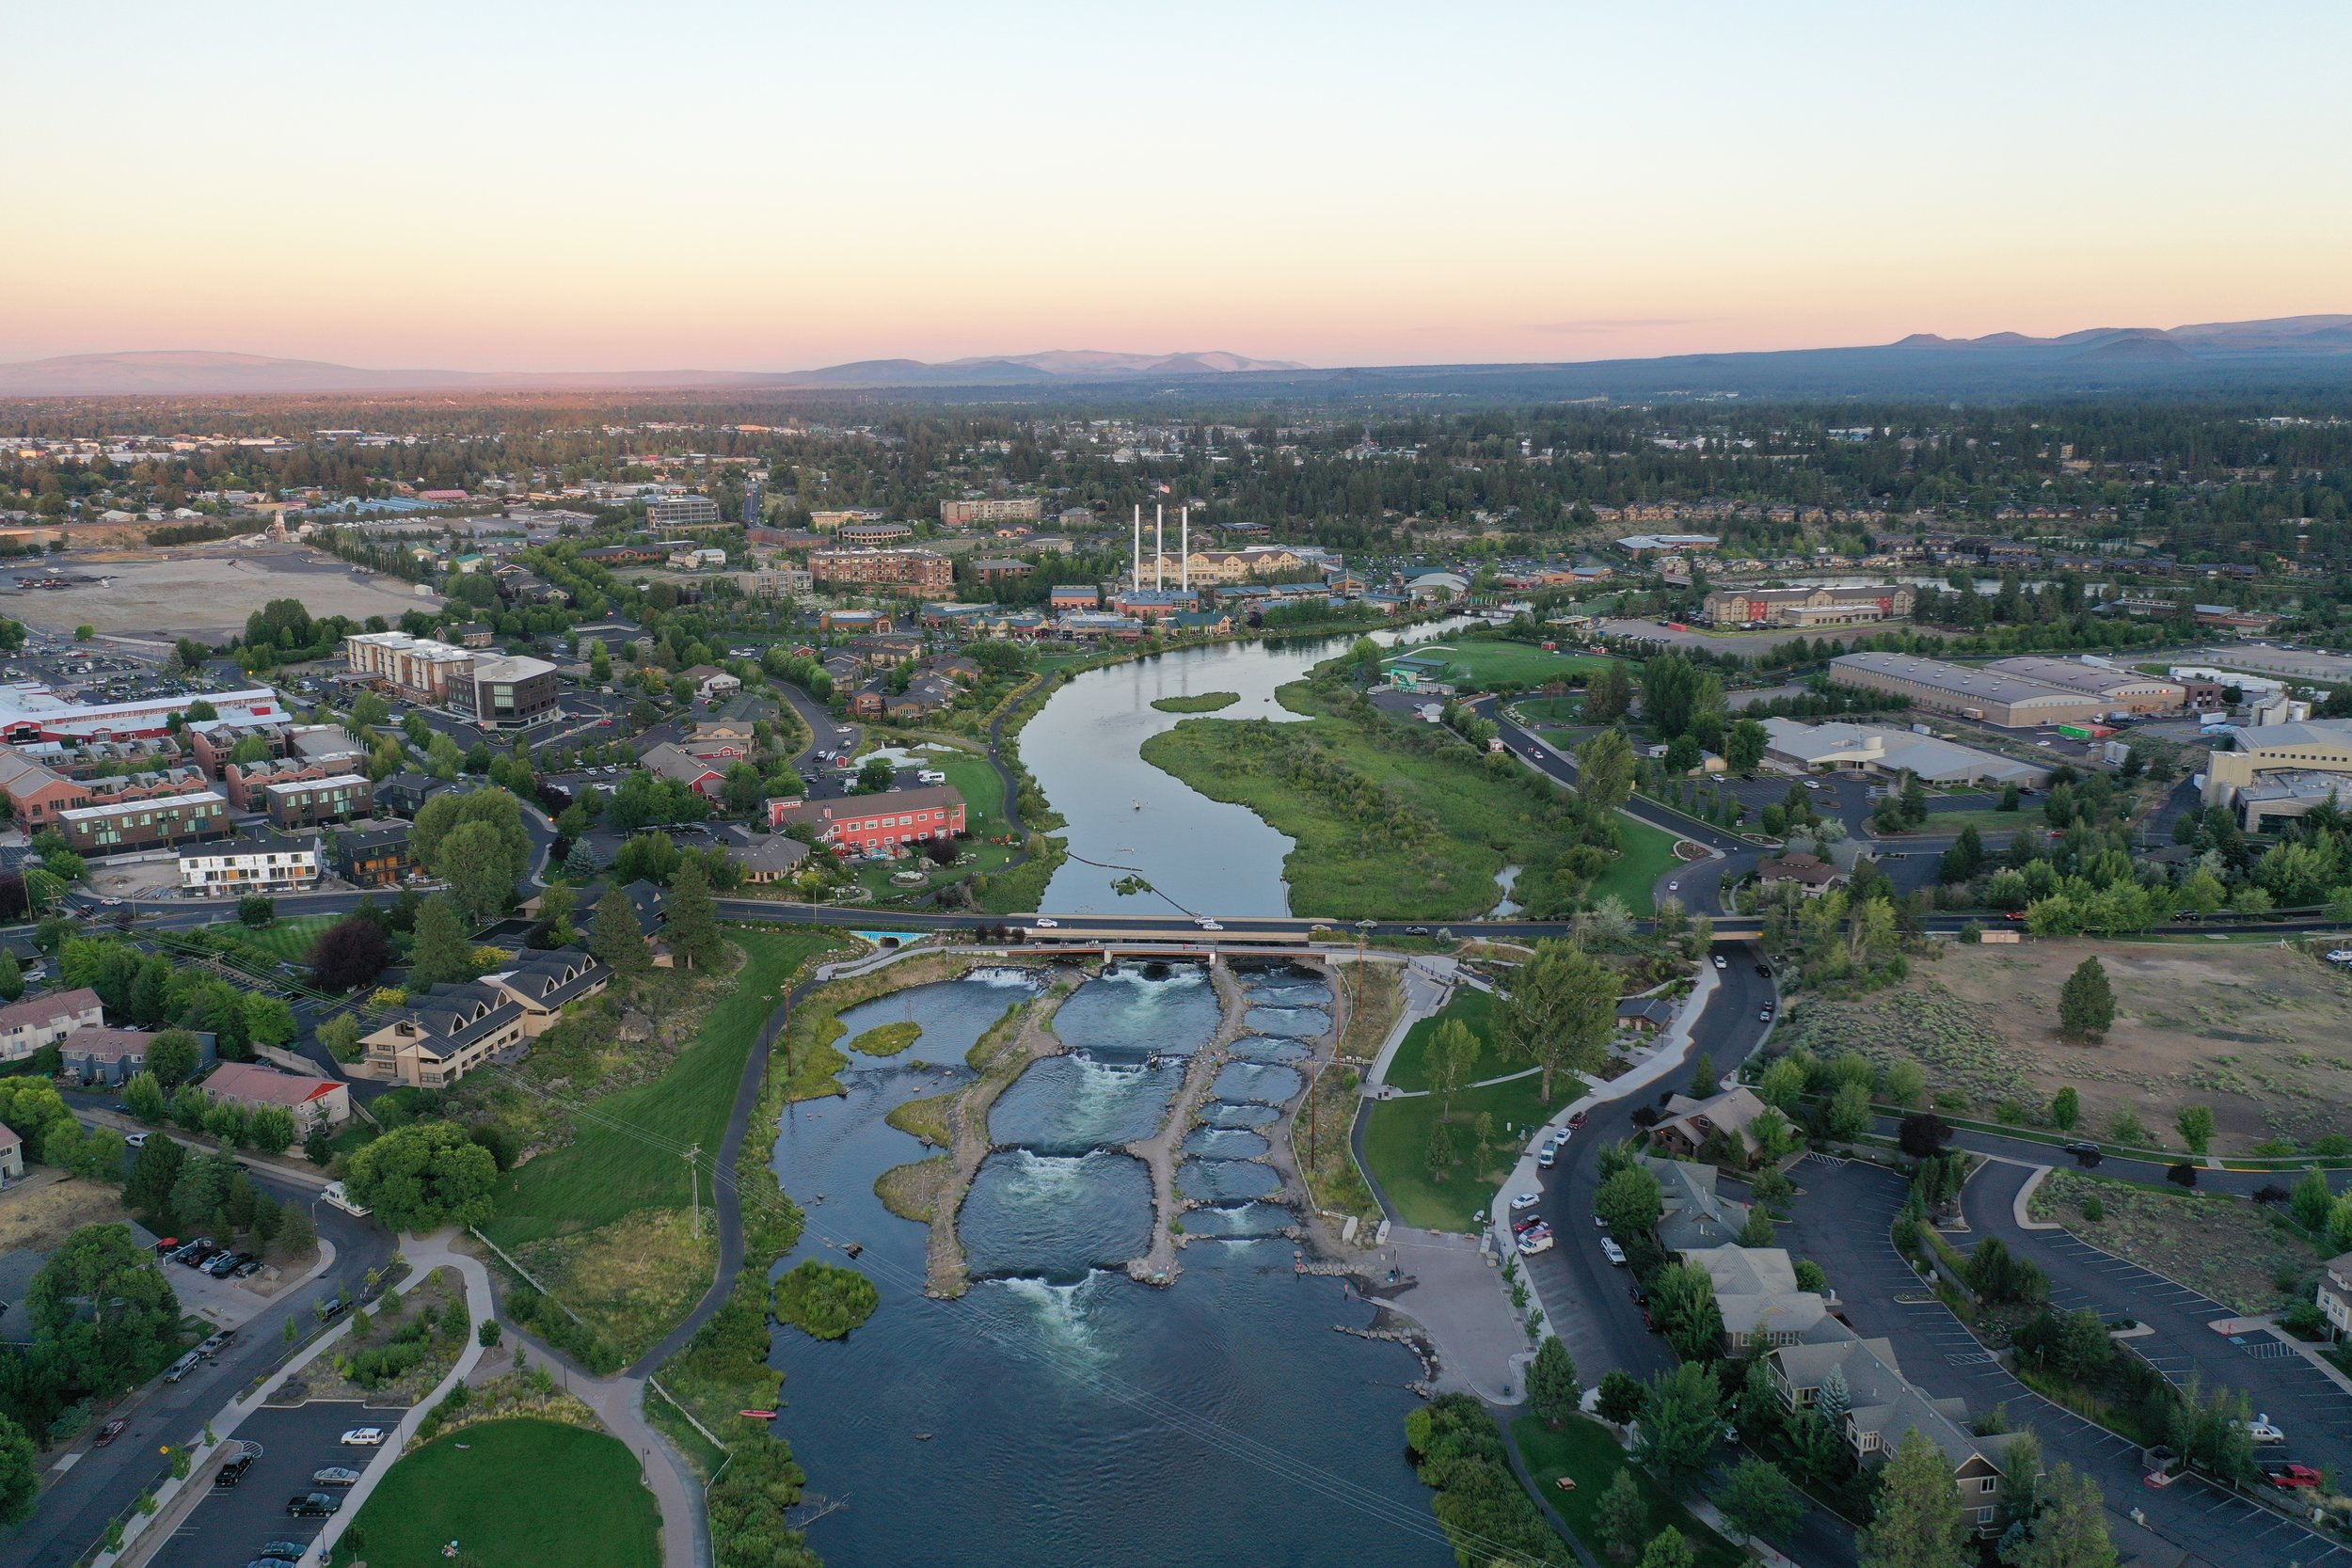 aerial image of deschutes river flowing through Bend, oregon, past the old mill district at sunset